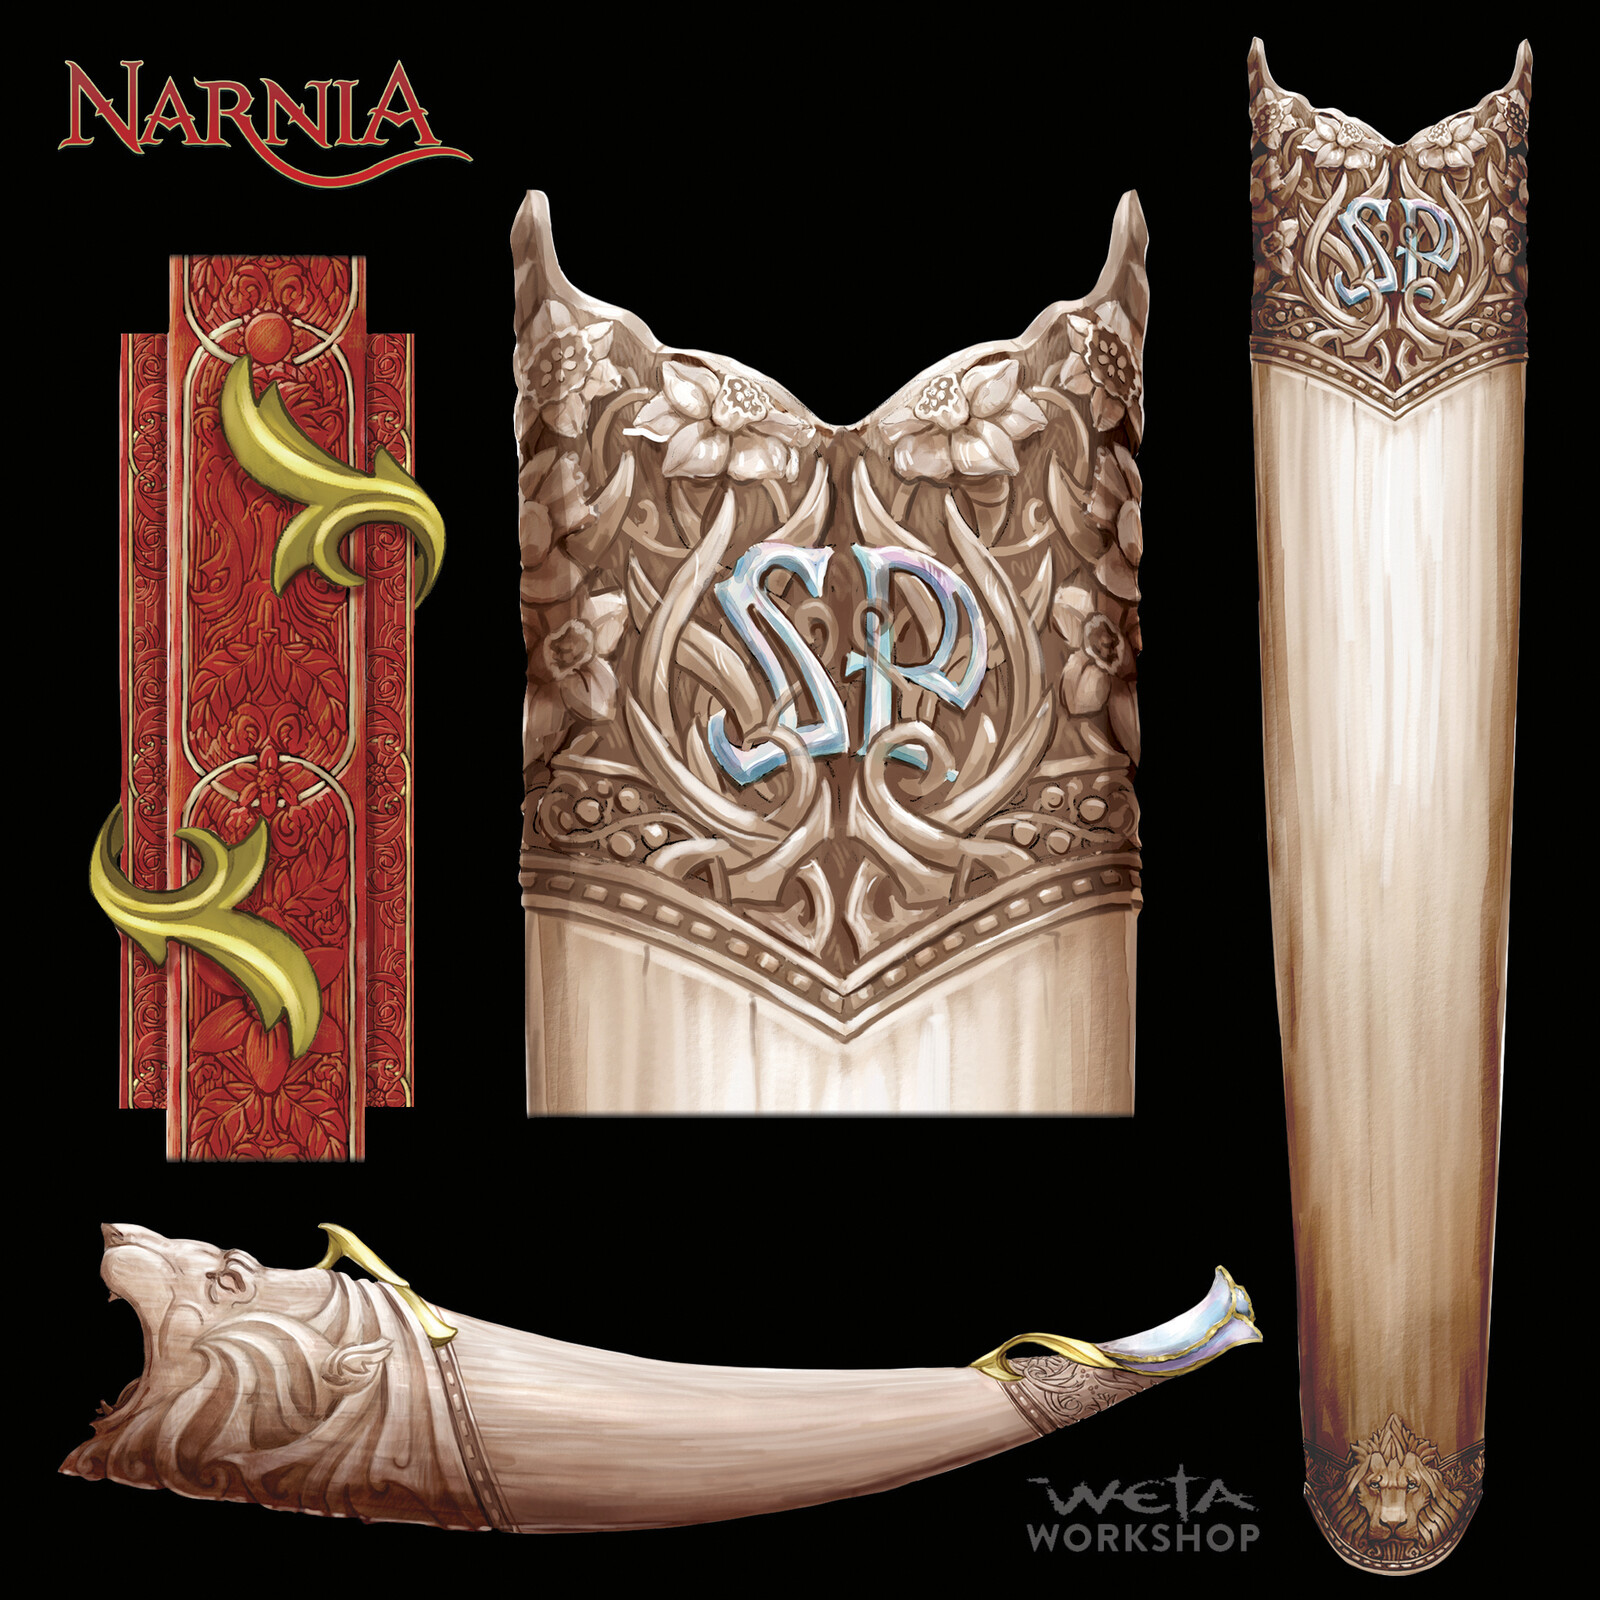 Narnia: Queen Susan's Gifts